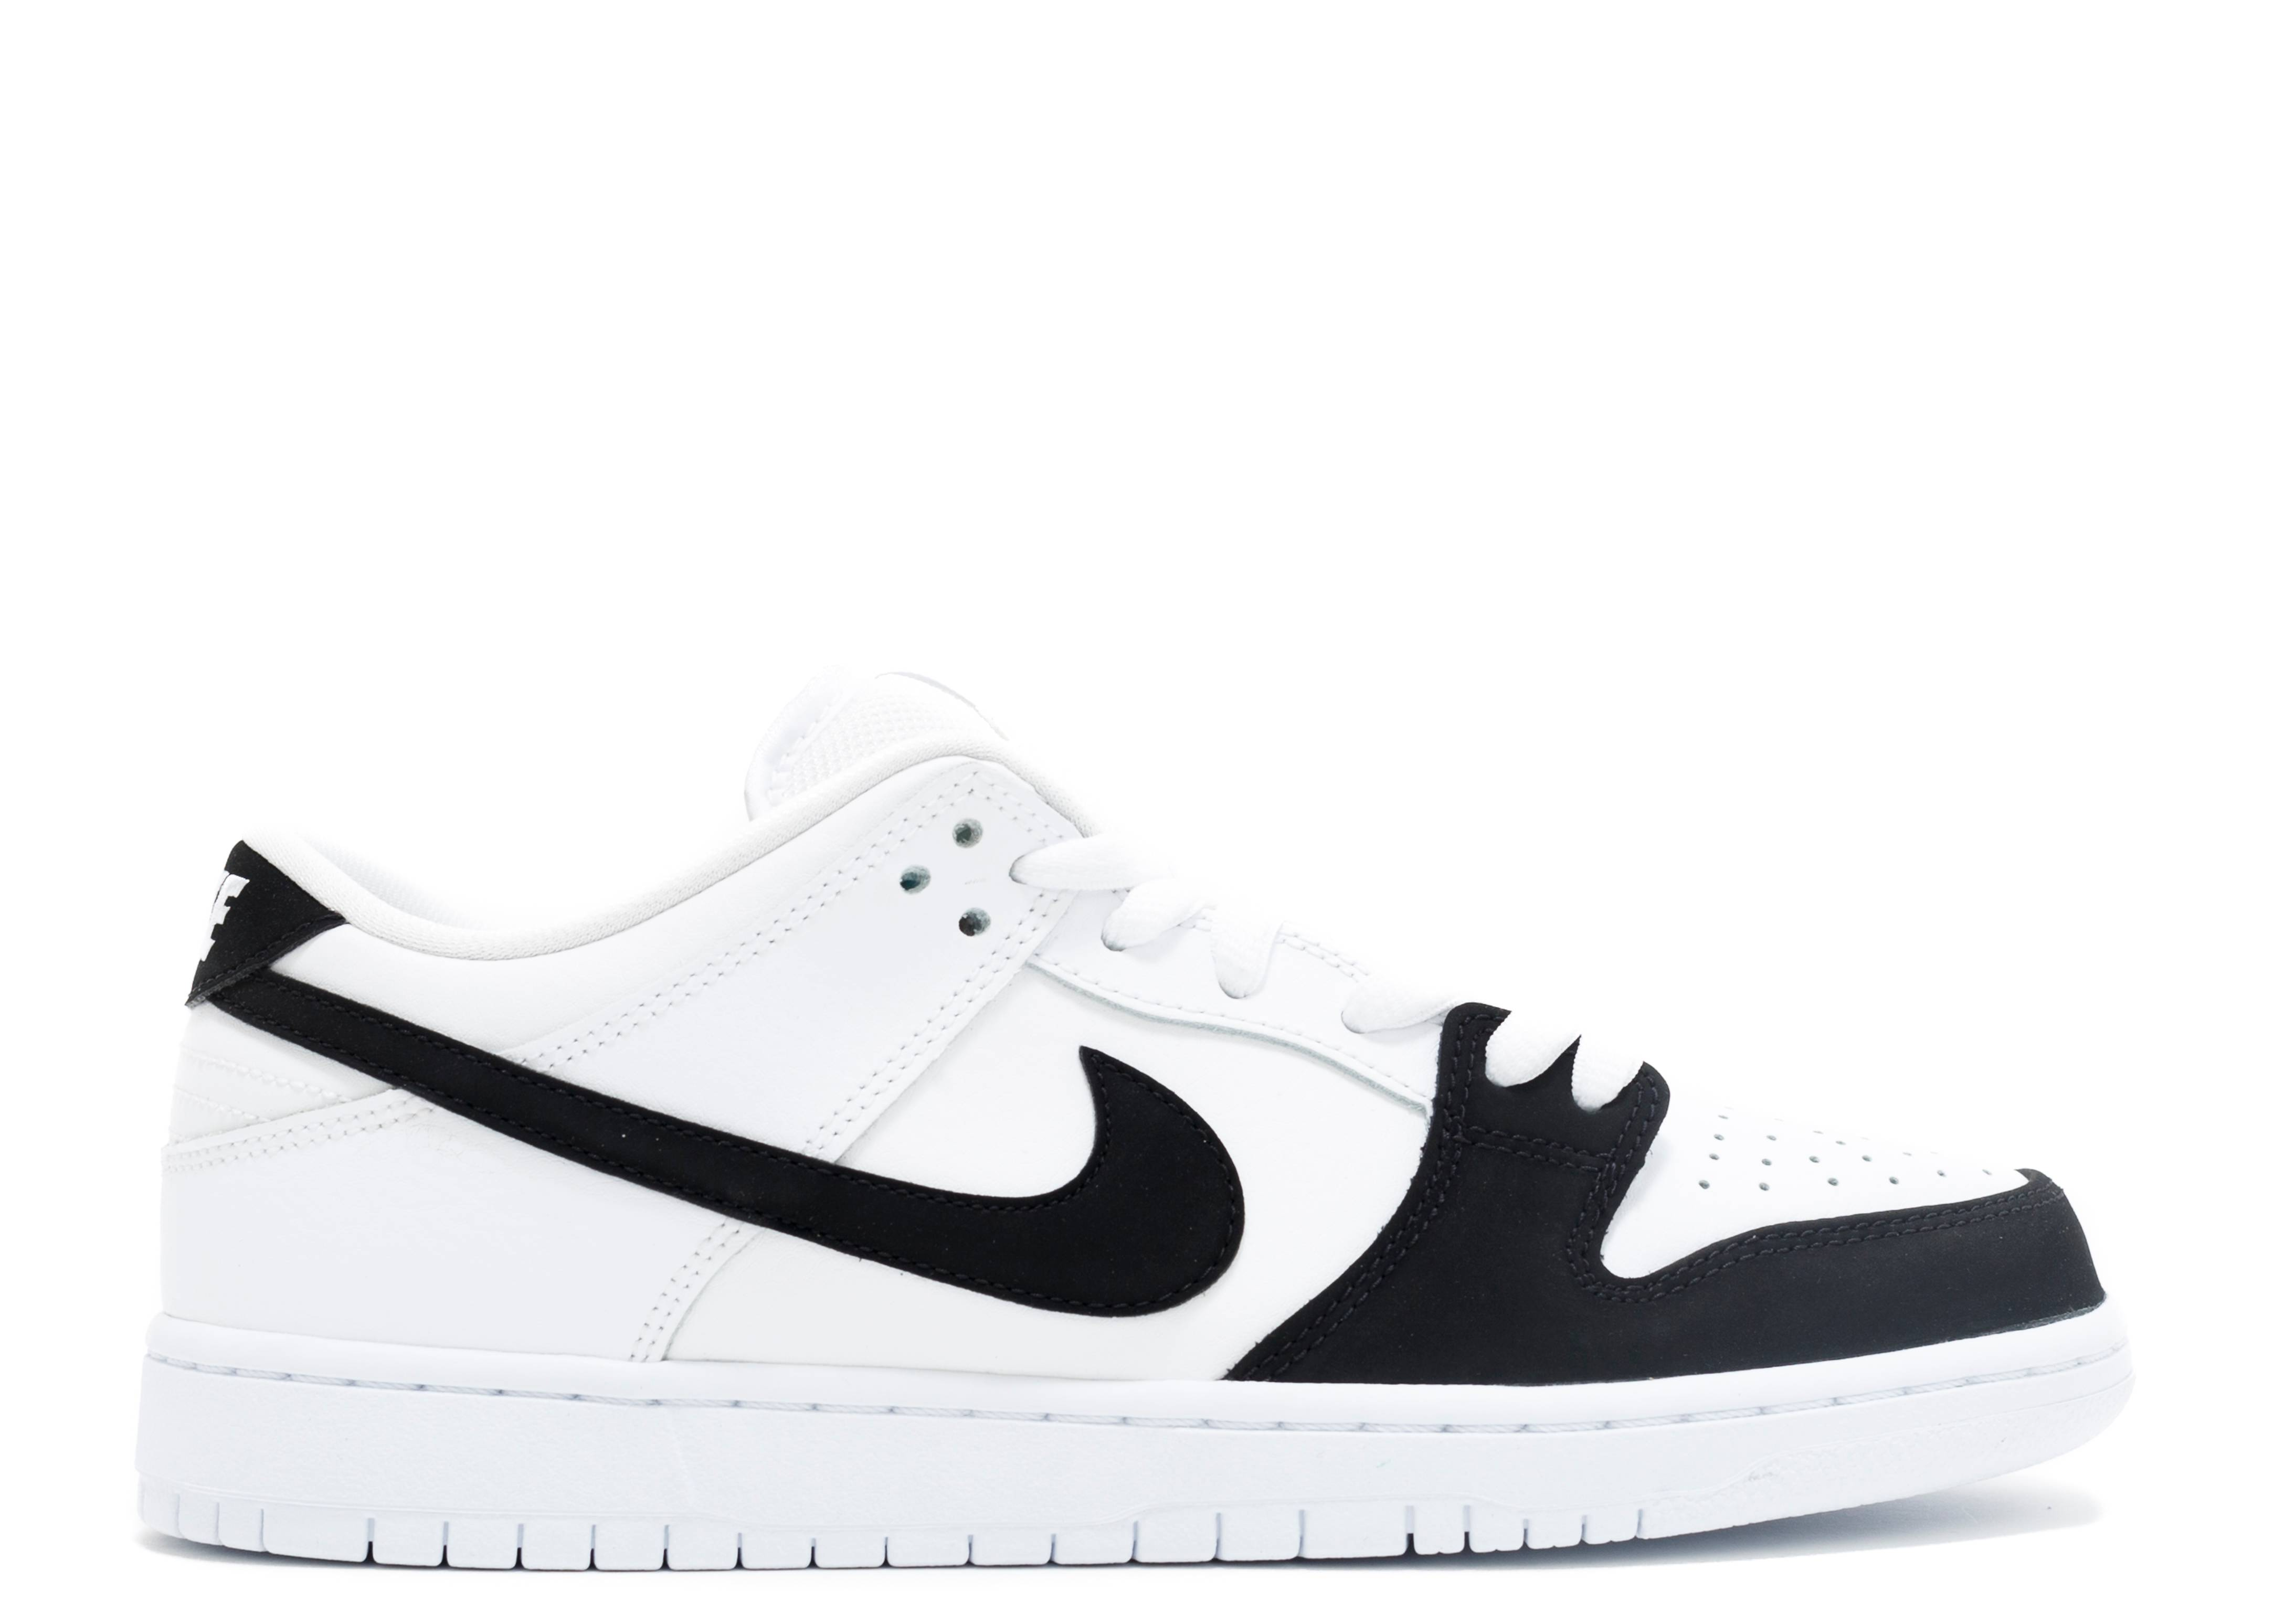 Buy Online nike dunk low black white Cheap   OFF56% Discounted 0a0445d33